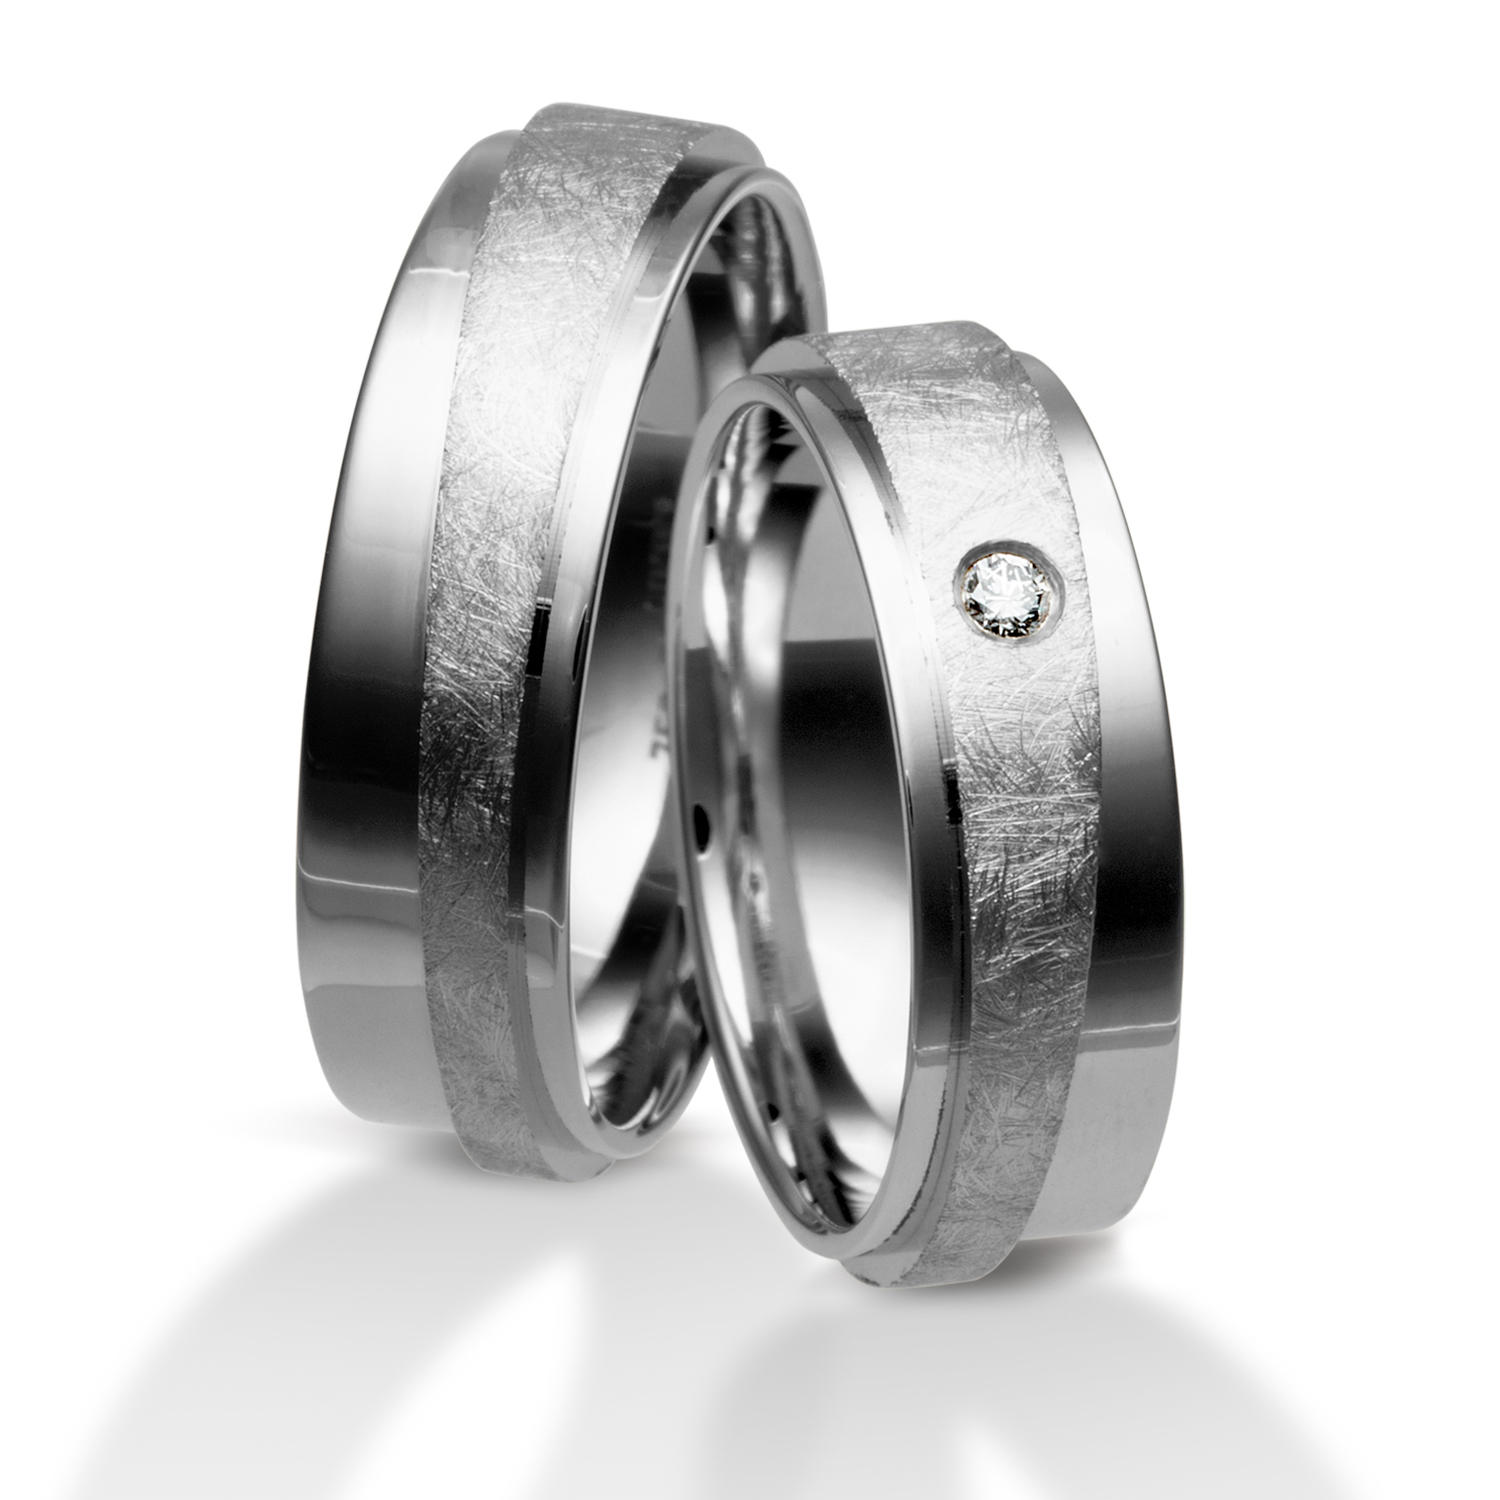 wedding bands, Eheringe, wedding rings, gold, platinum, carbon, diamonds, diamanten, heiraten